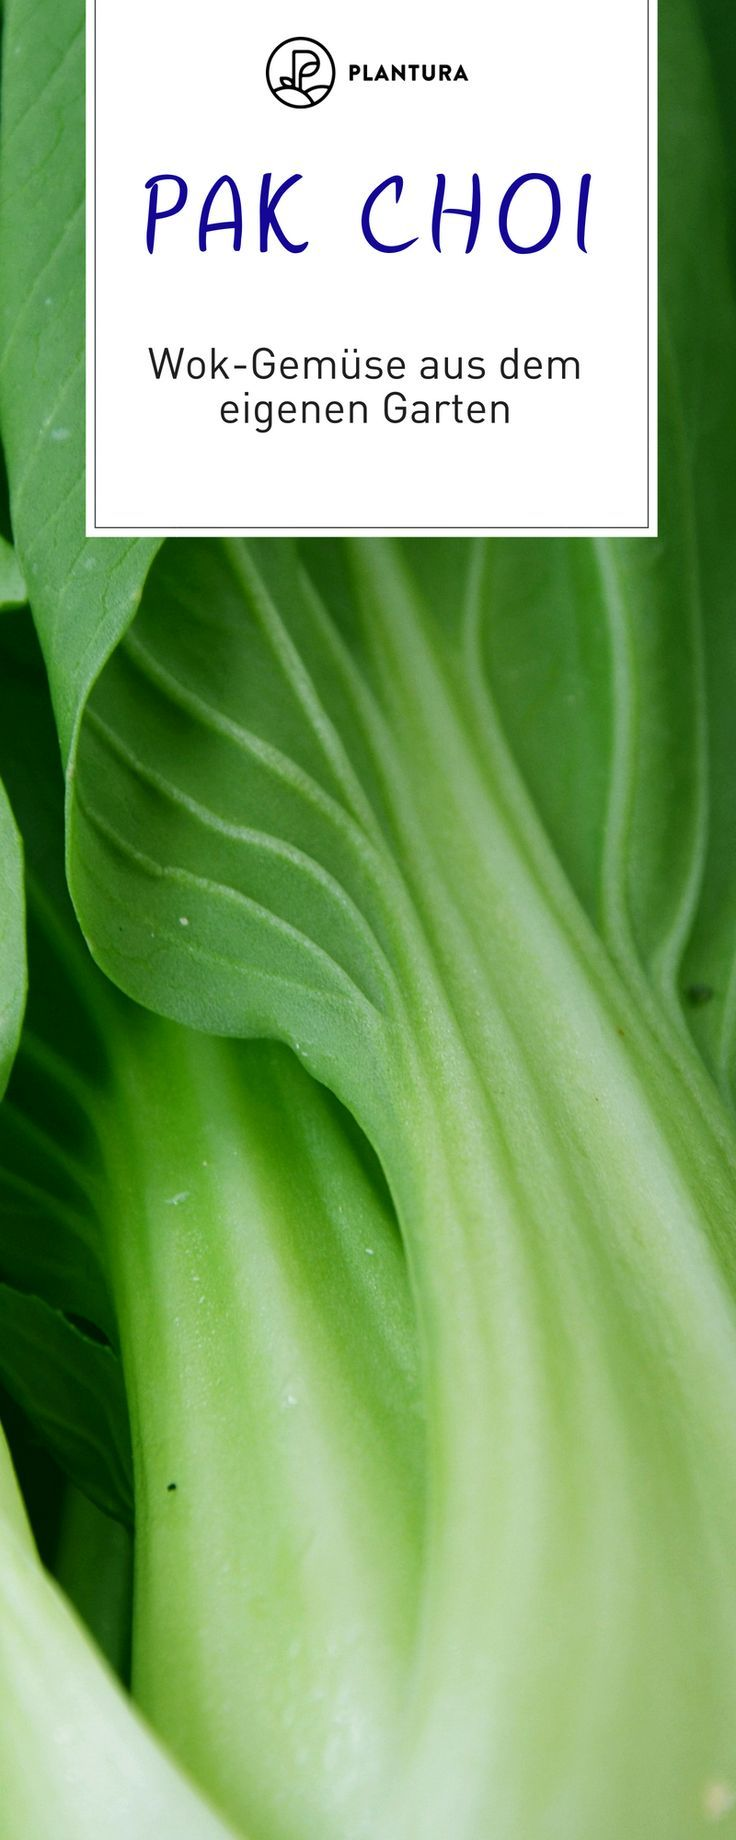 Grow Pak Choi: sowing care and harvest time #gemüsegartenanlegen